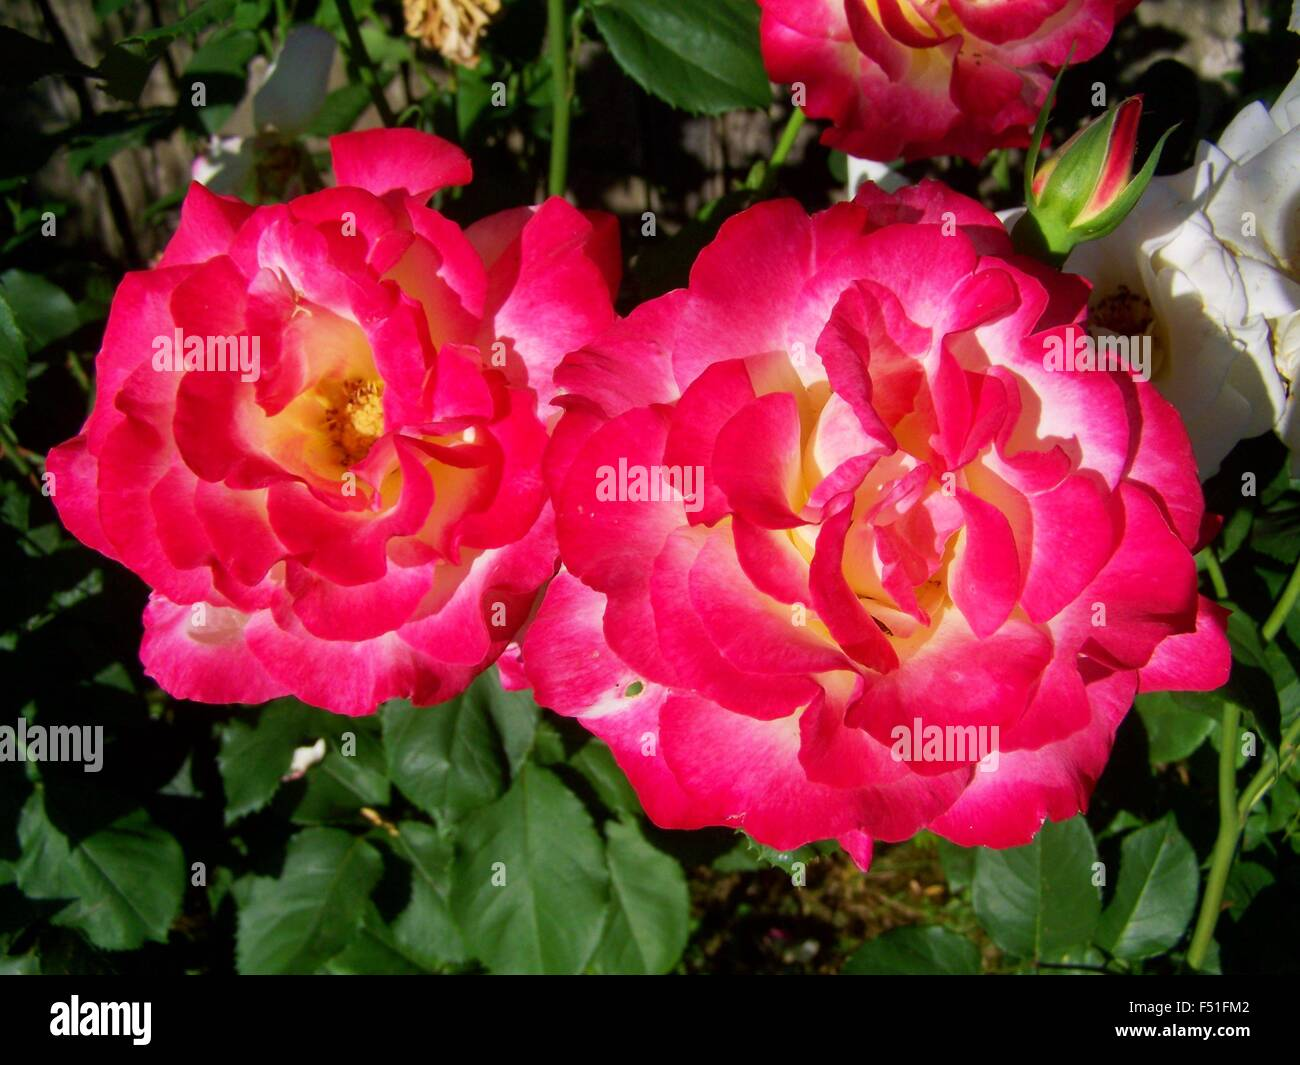 Close up of a pair of pink roses - Stock Image